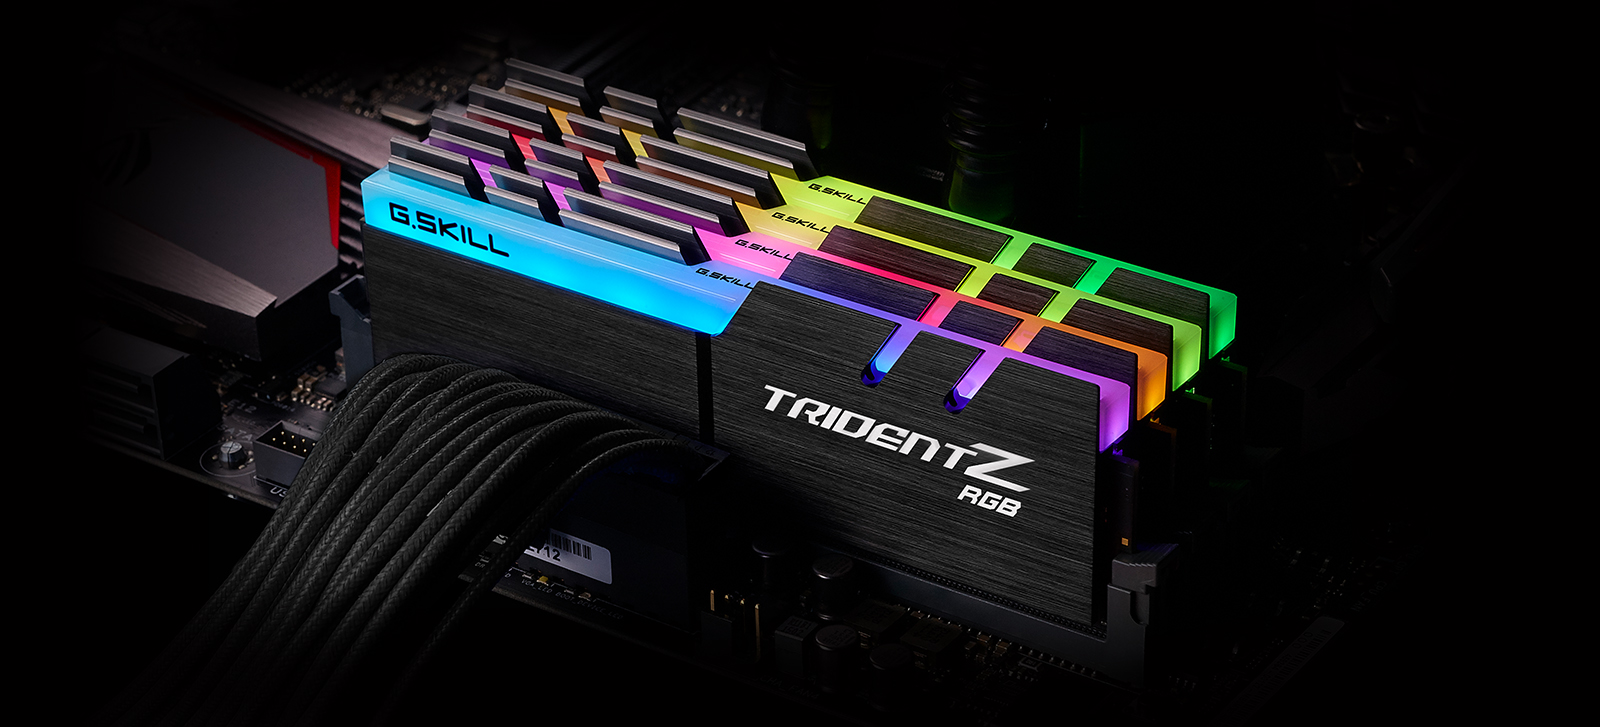 four tridentz rgb memory modules installed on a motherboard, angled to the left